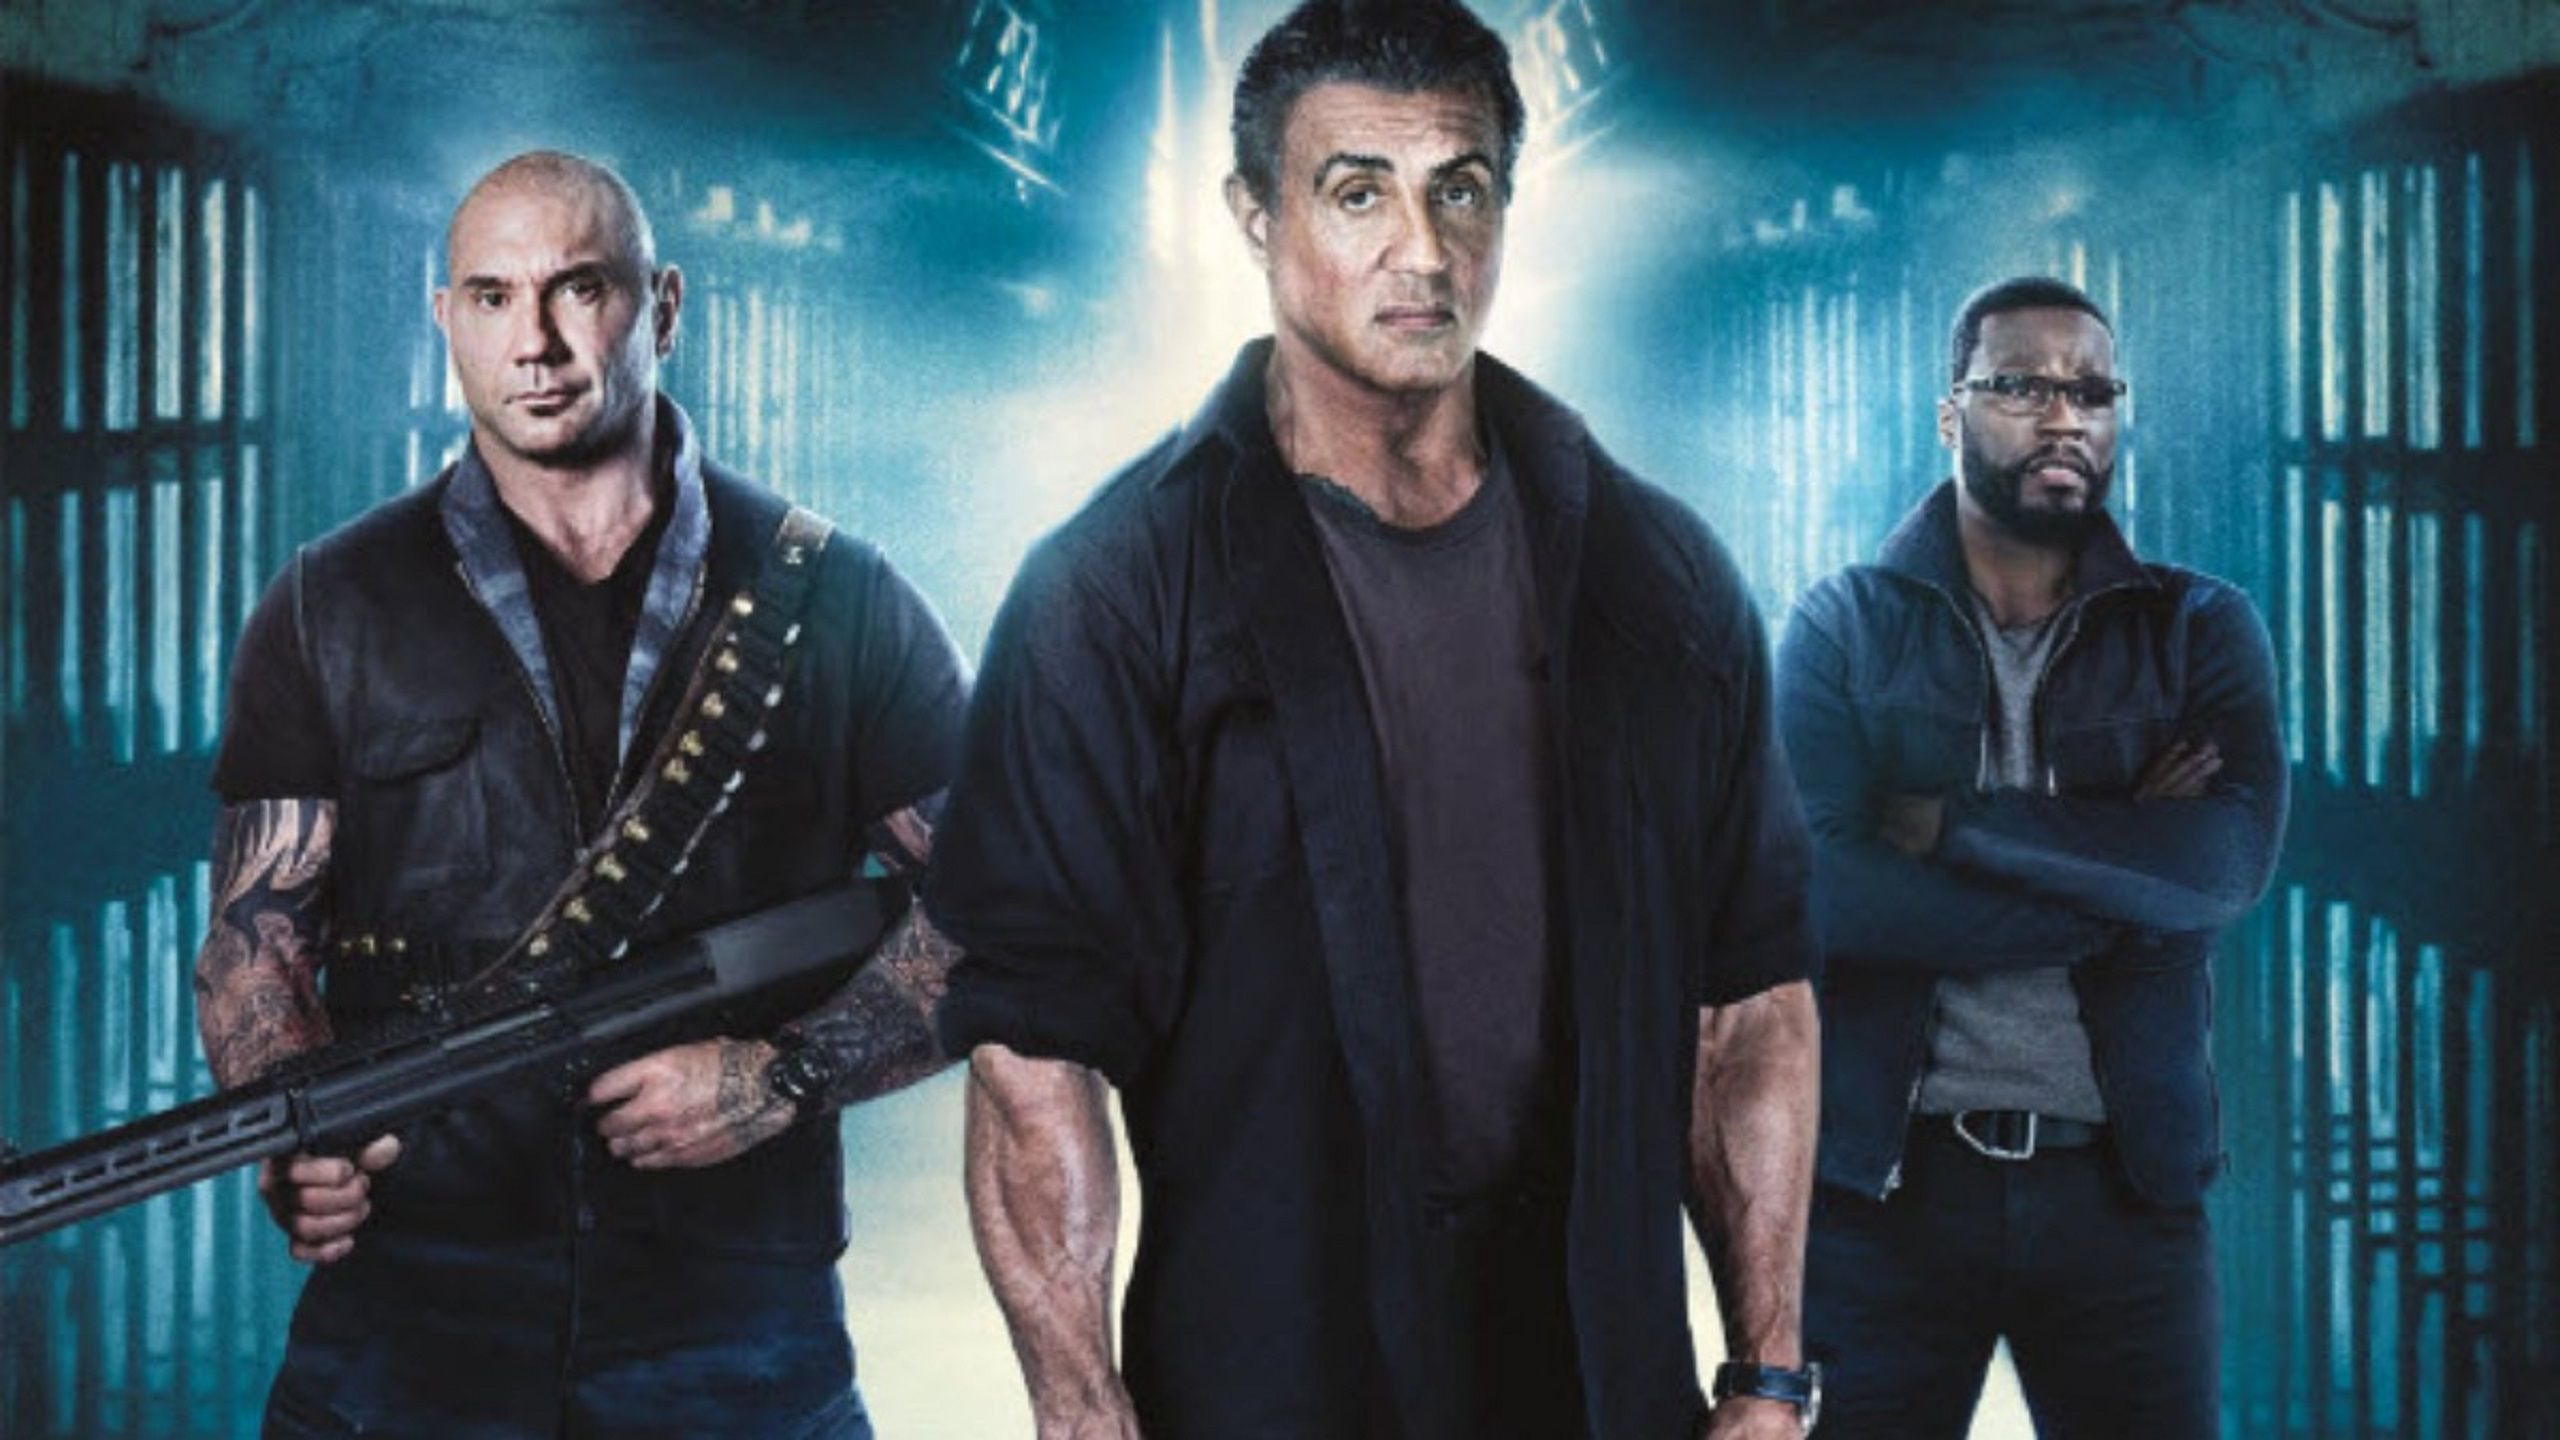 Escape Plan 3 the Extractors 2019 Sylvester Stallone, 50 Cent, Dave Bautista